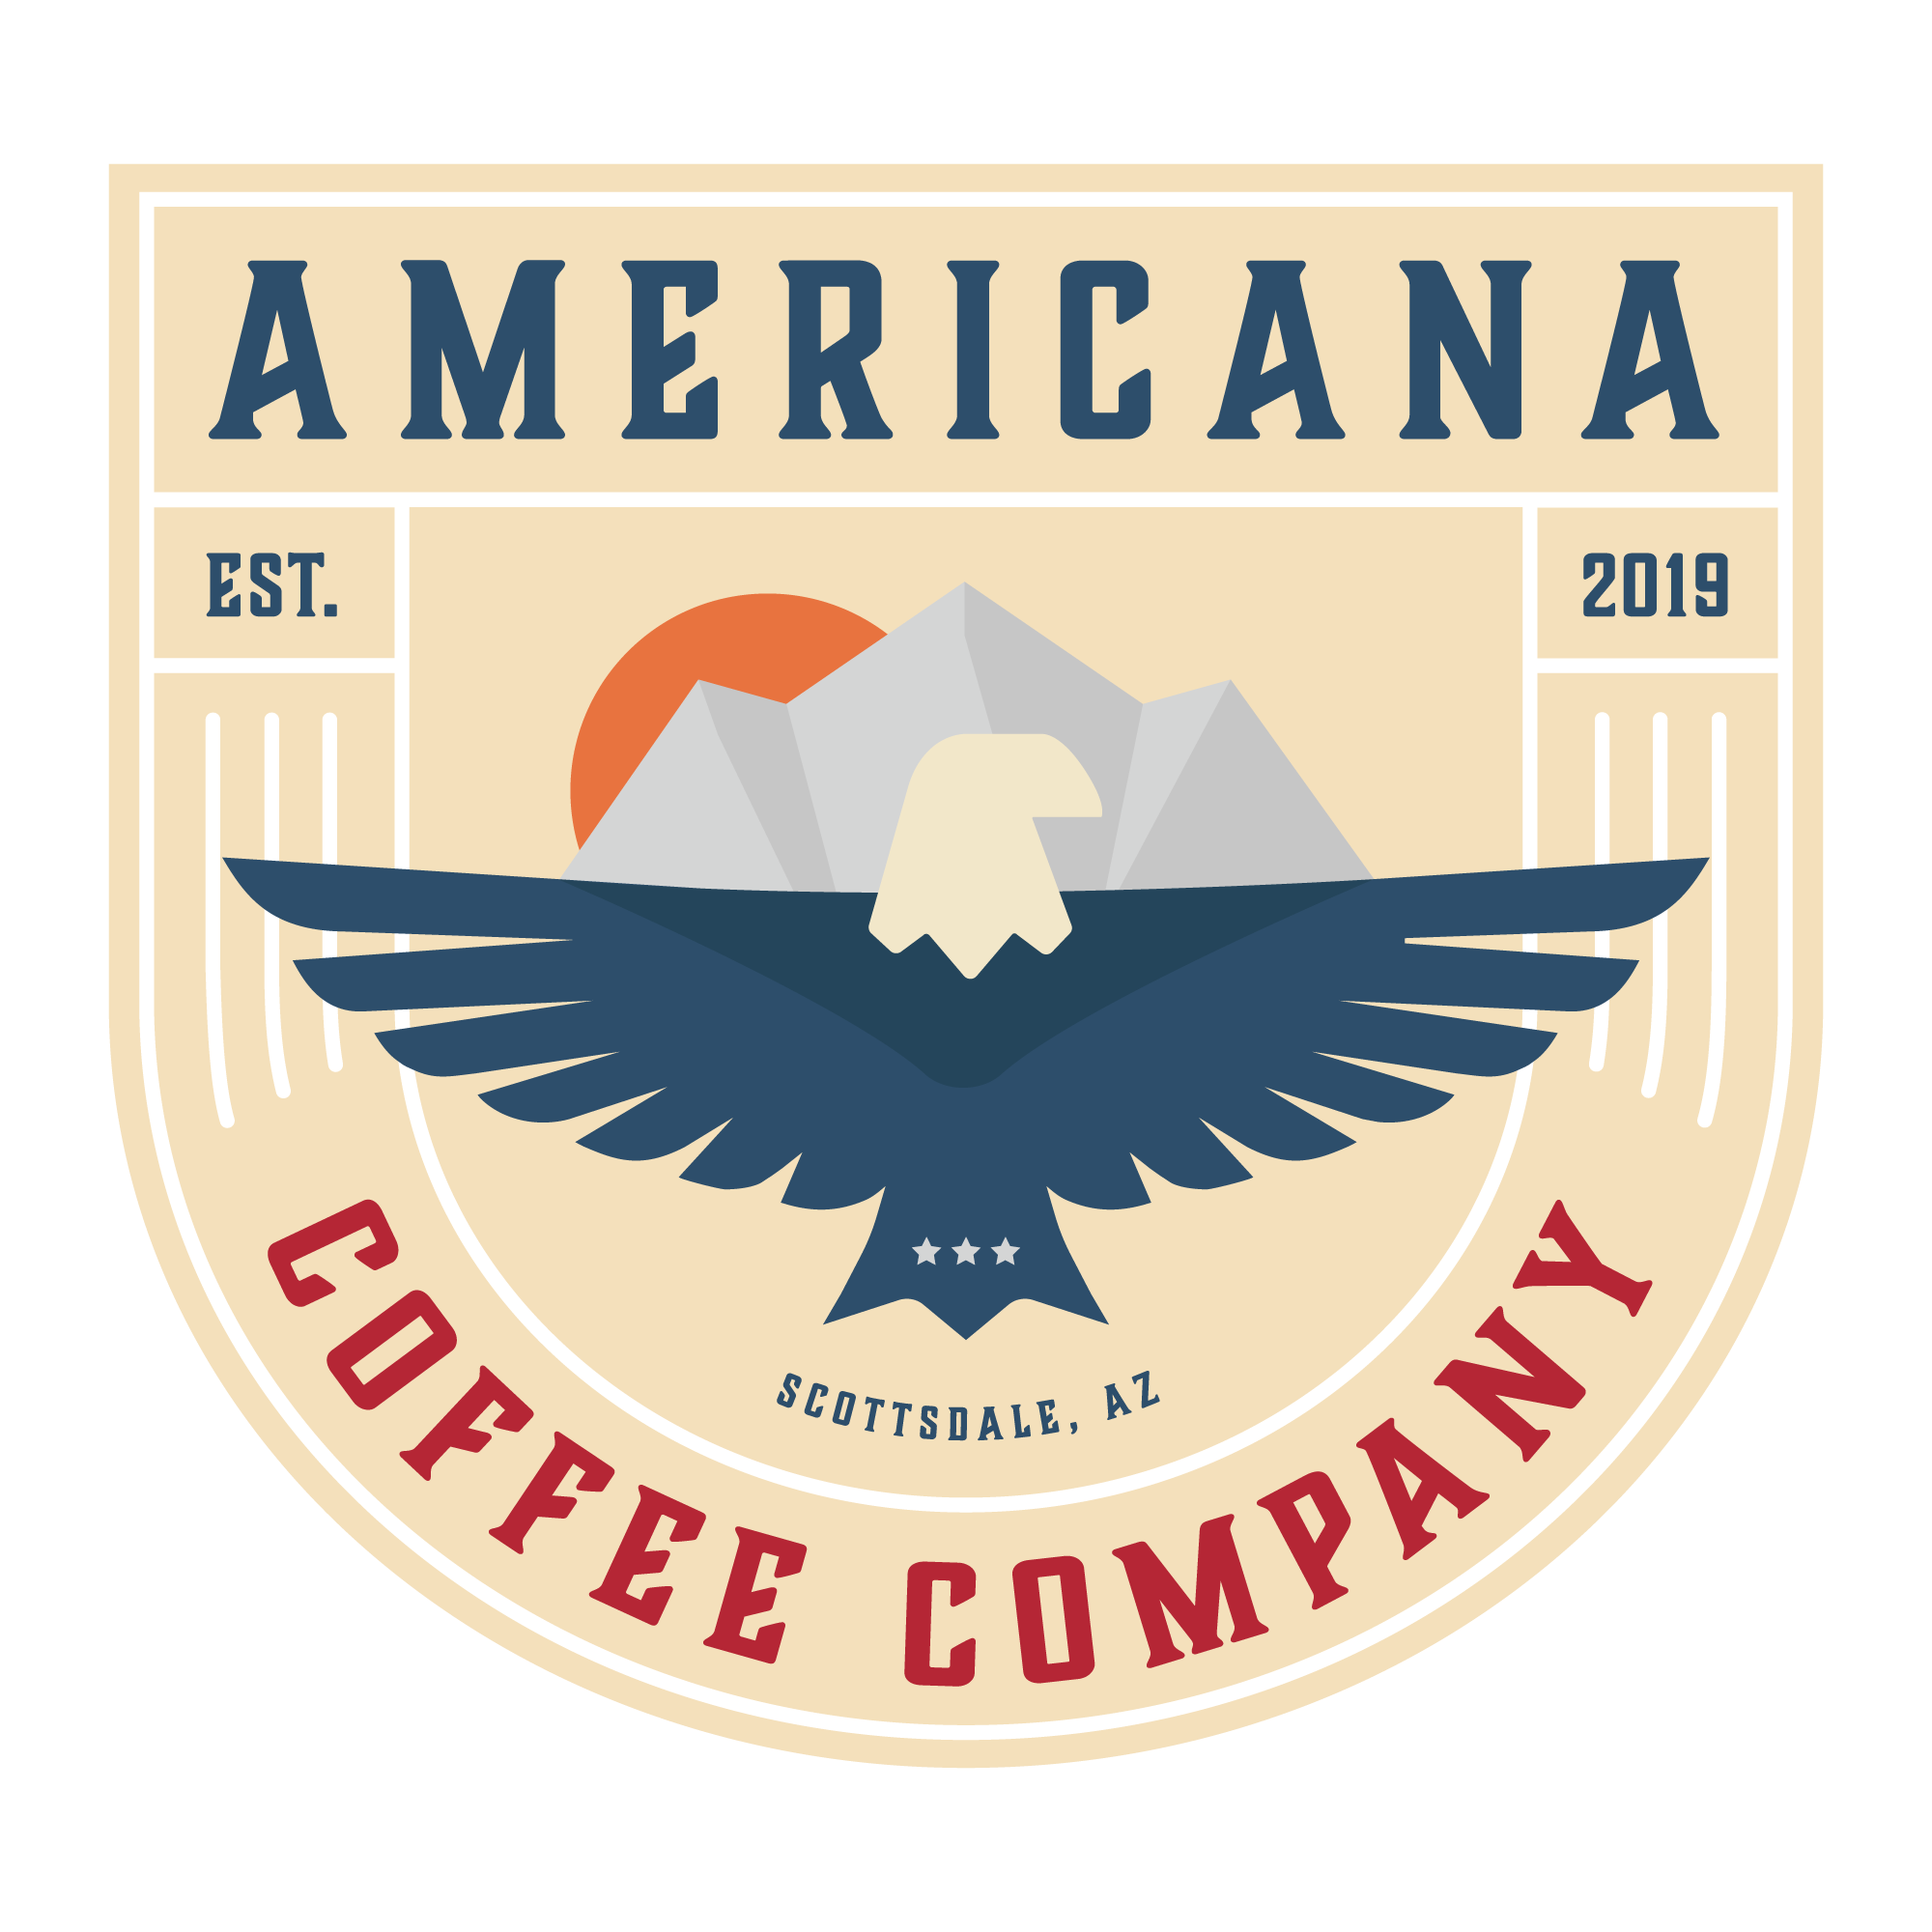 Phoenix Branding Agency - Coffee Shop Logo Design - Badge 1